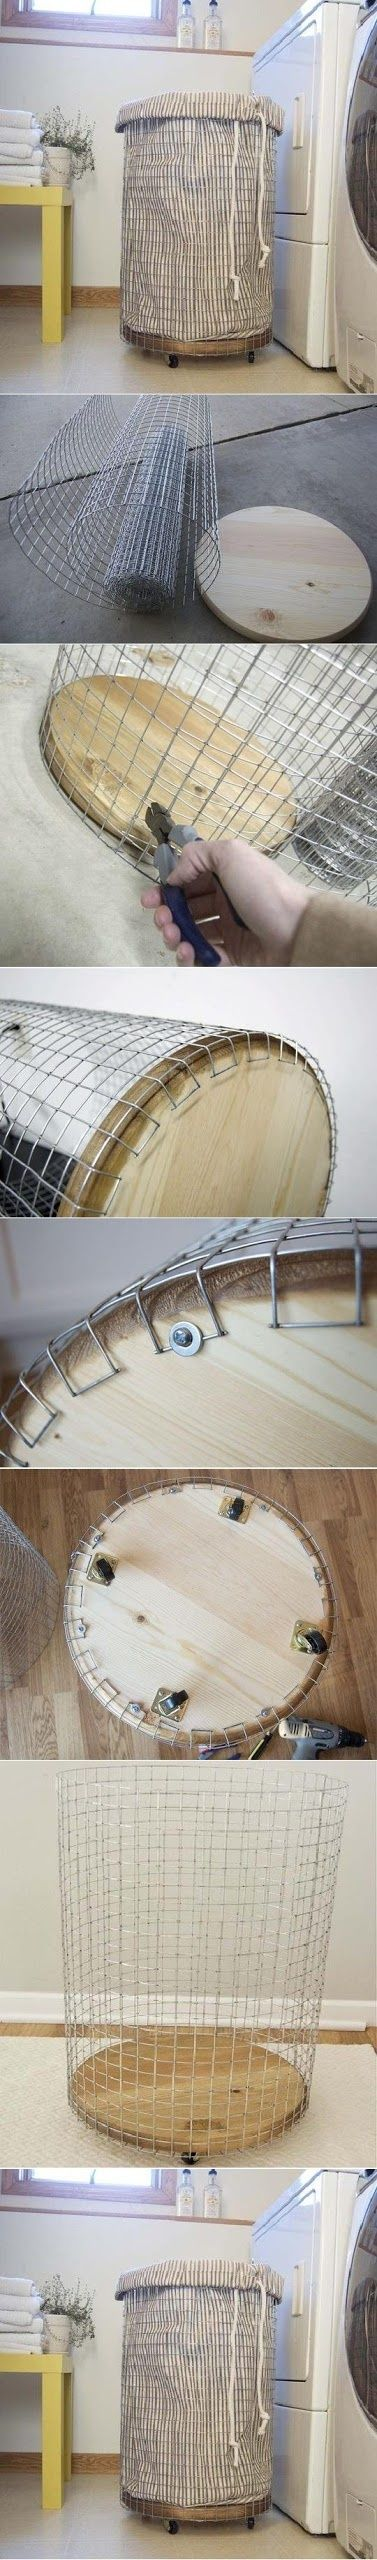 Cheap & Chic: How To Make a French-Vintage-Inspired Wire Hamper ...